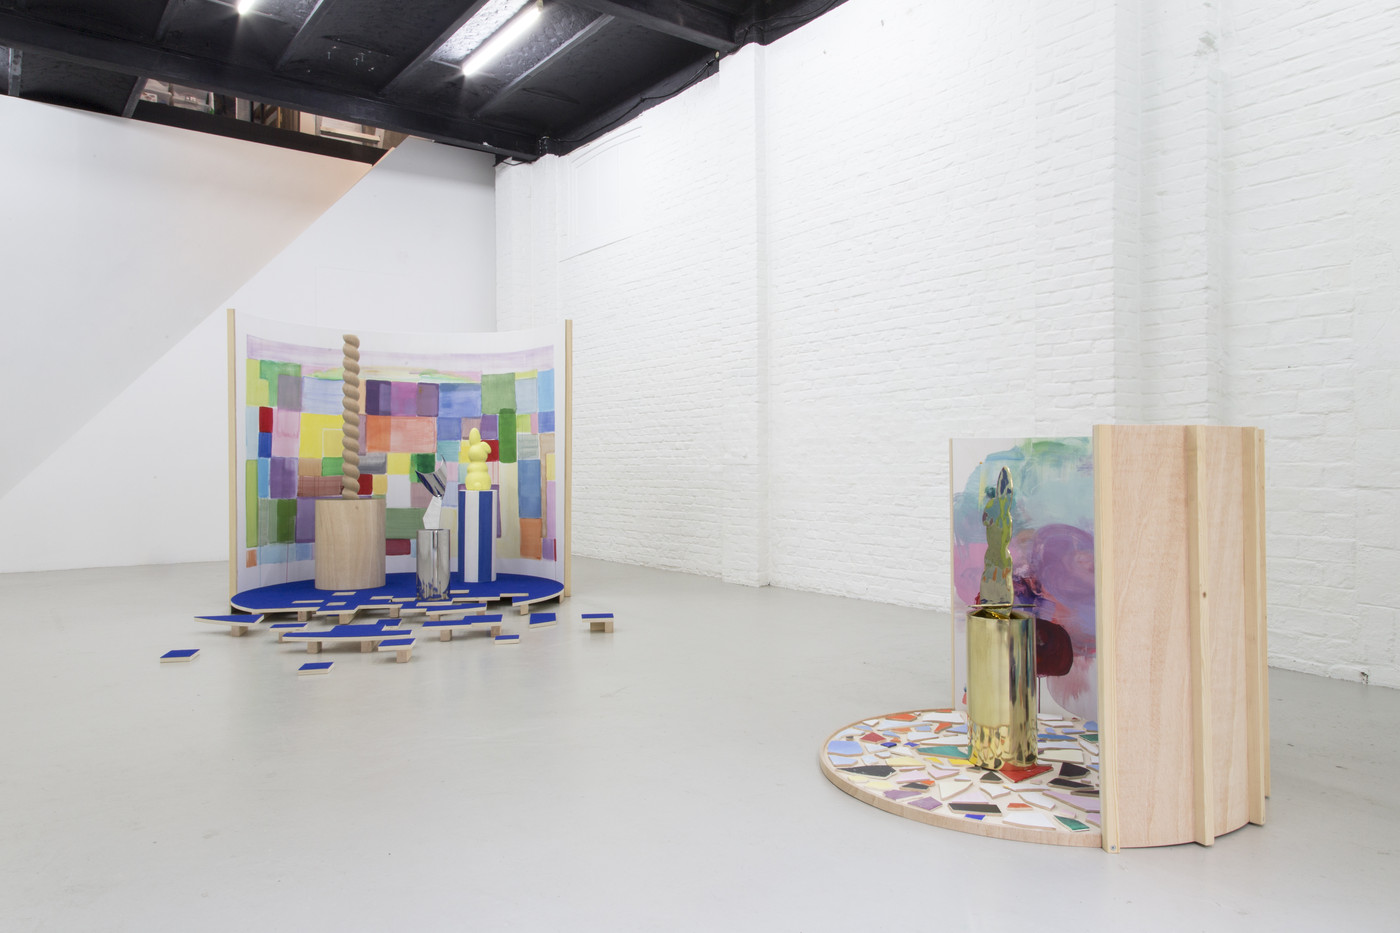 Nadia Naveau, I Spy With My Little Eye, 2016, installation view Bynnykins Square